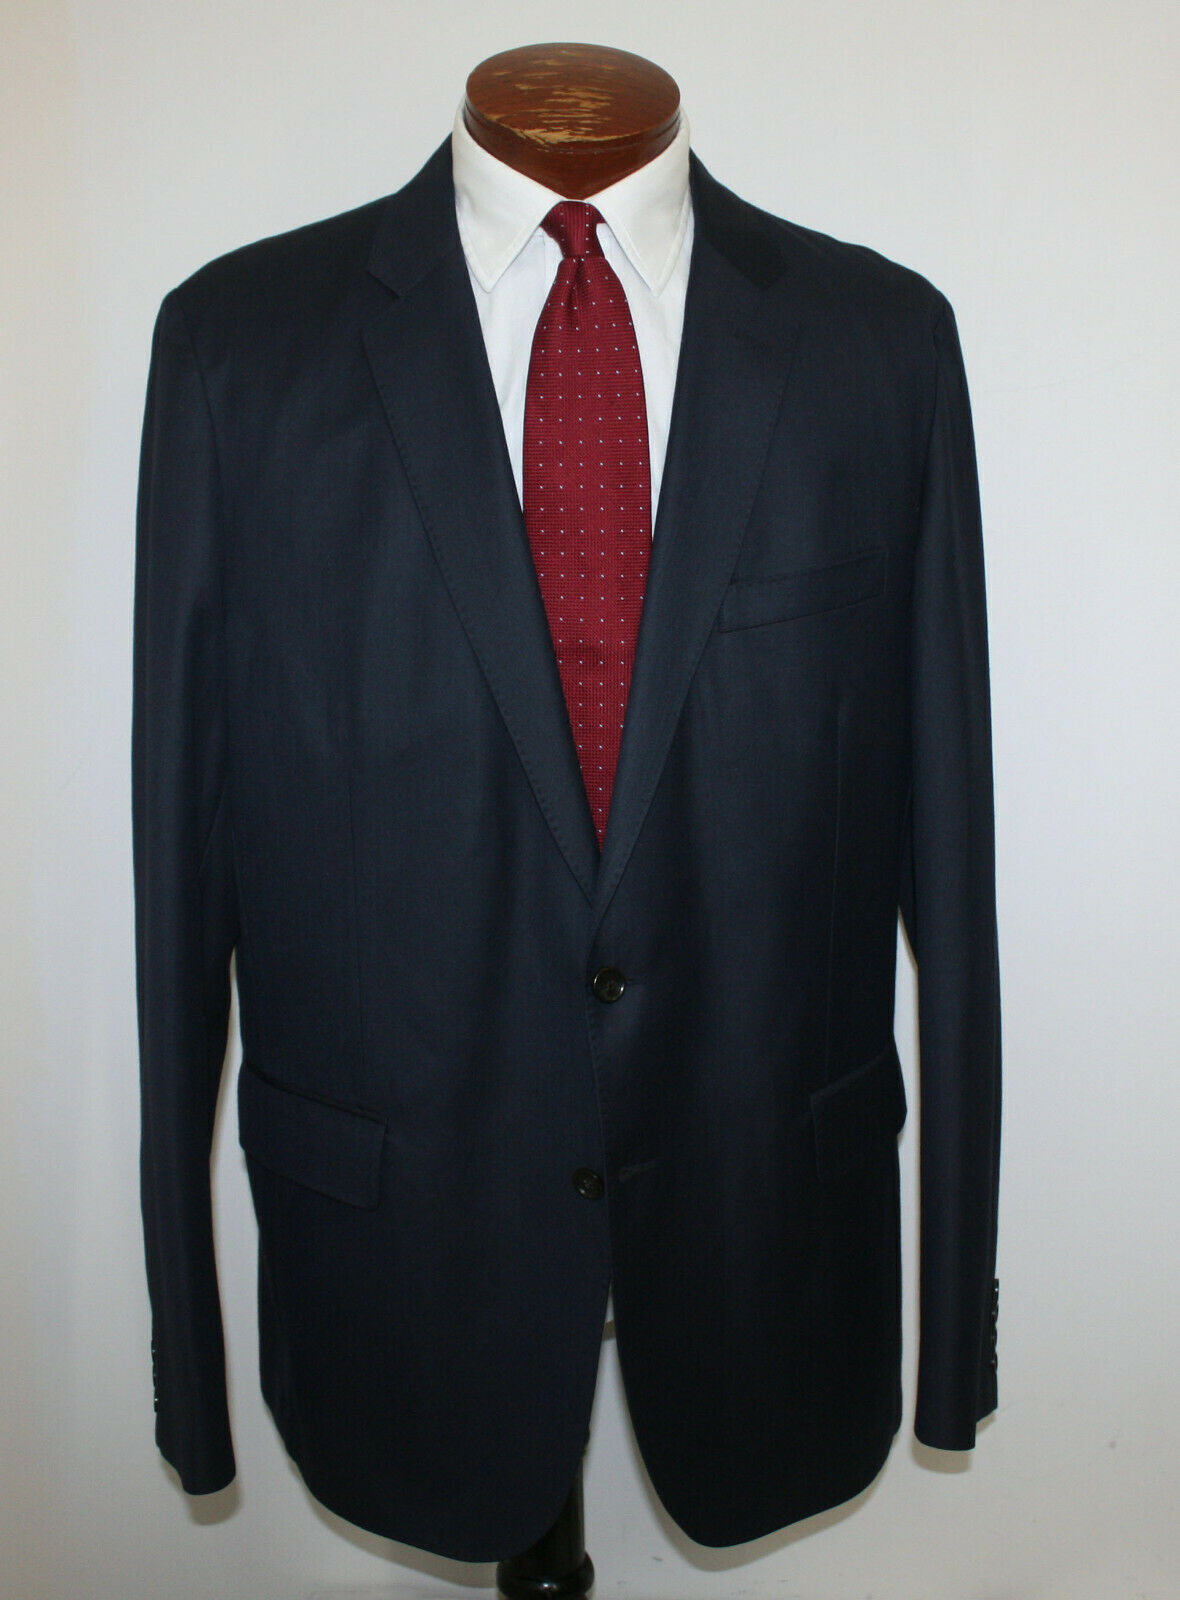 J Crew Ludlow Slim-Fit Unstructured Blazer In American Wool Navy Unlined 46L